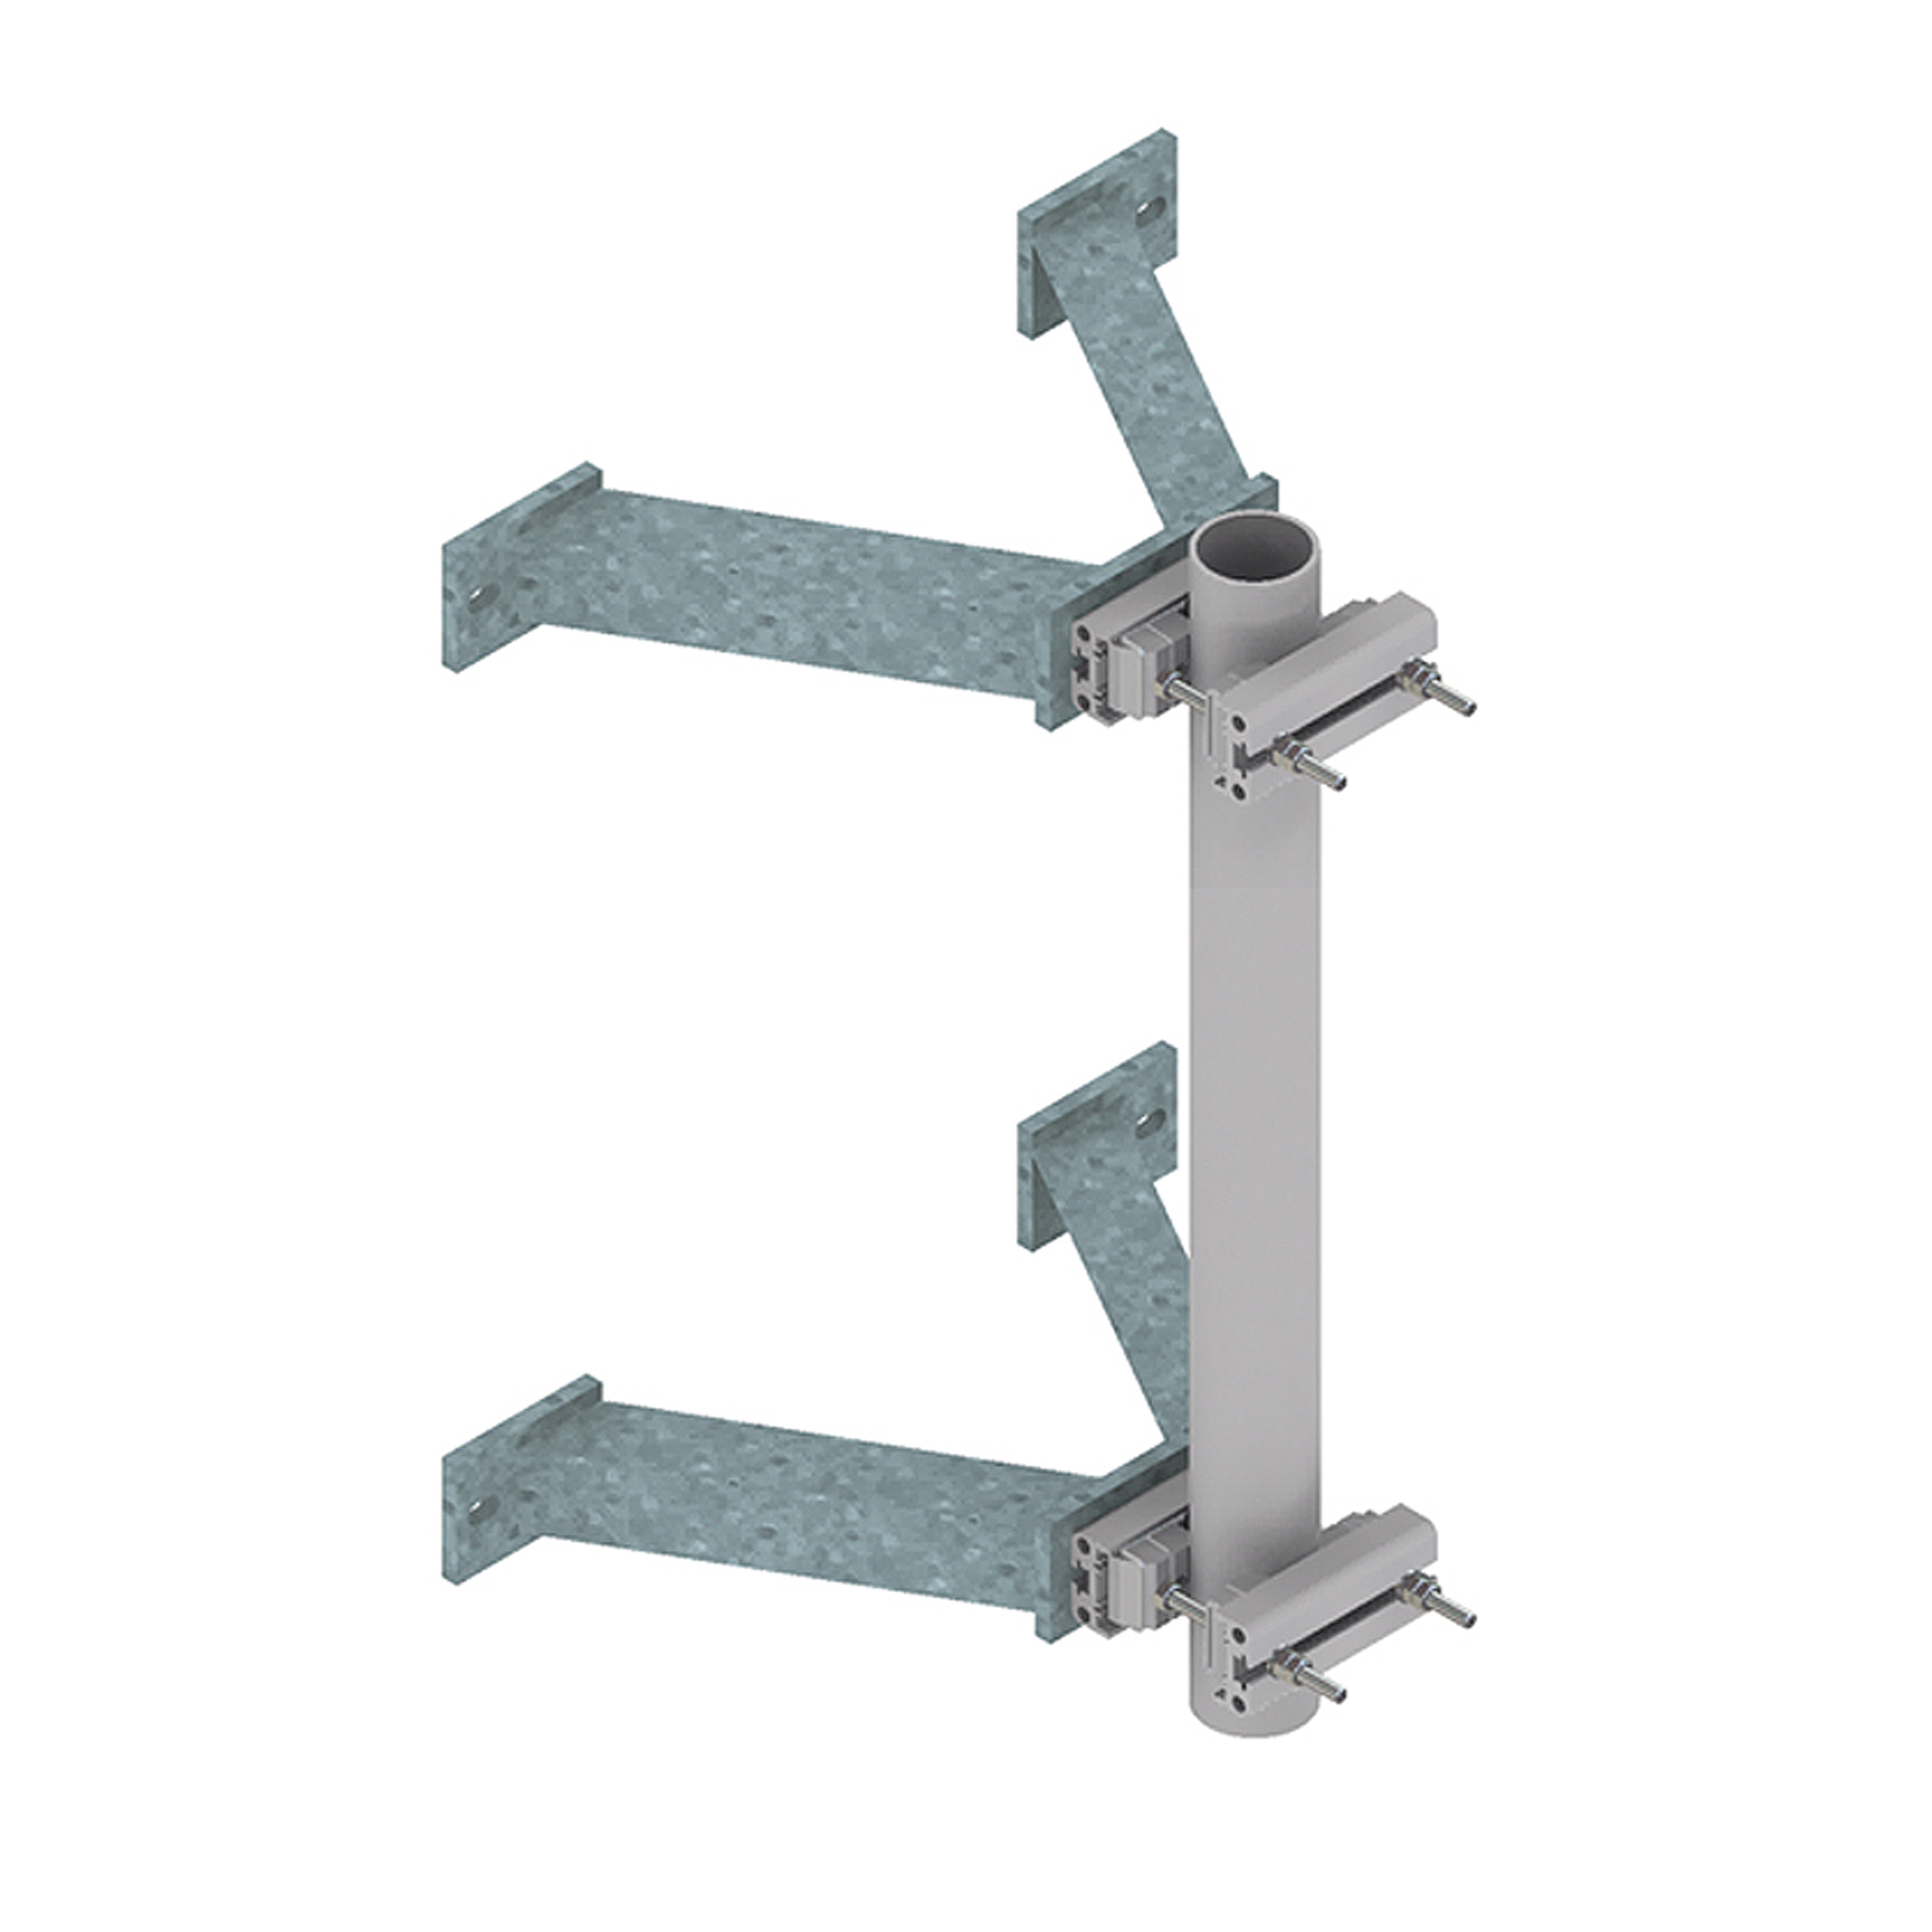 Wall Supports